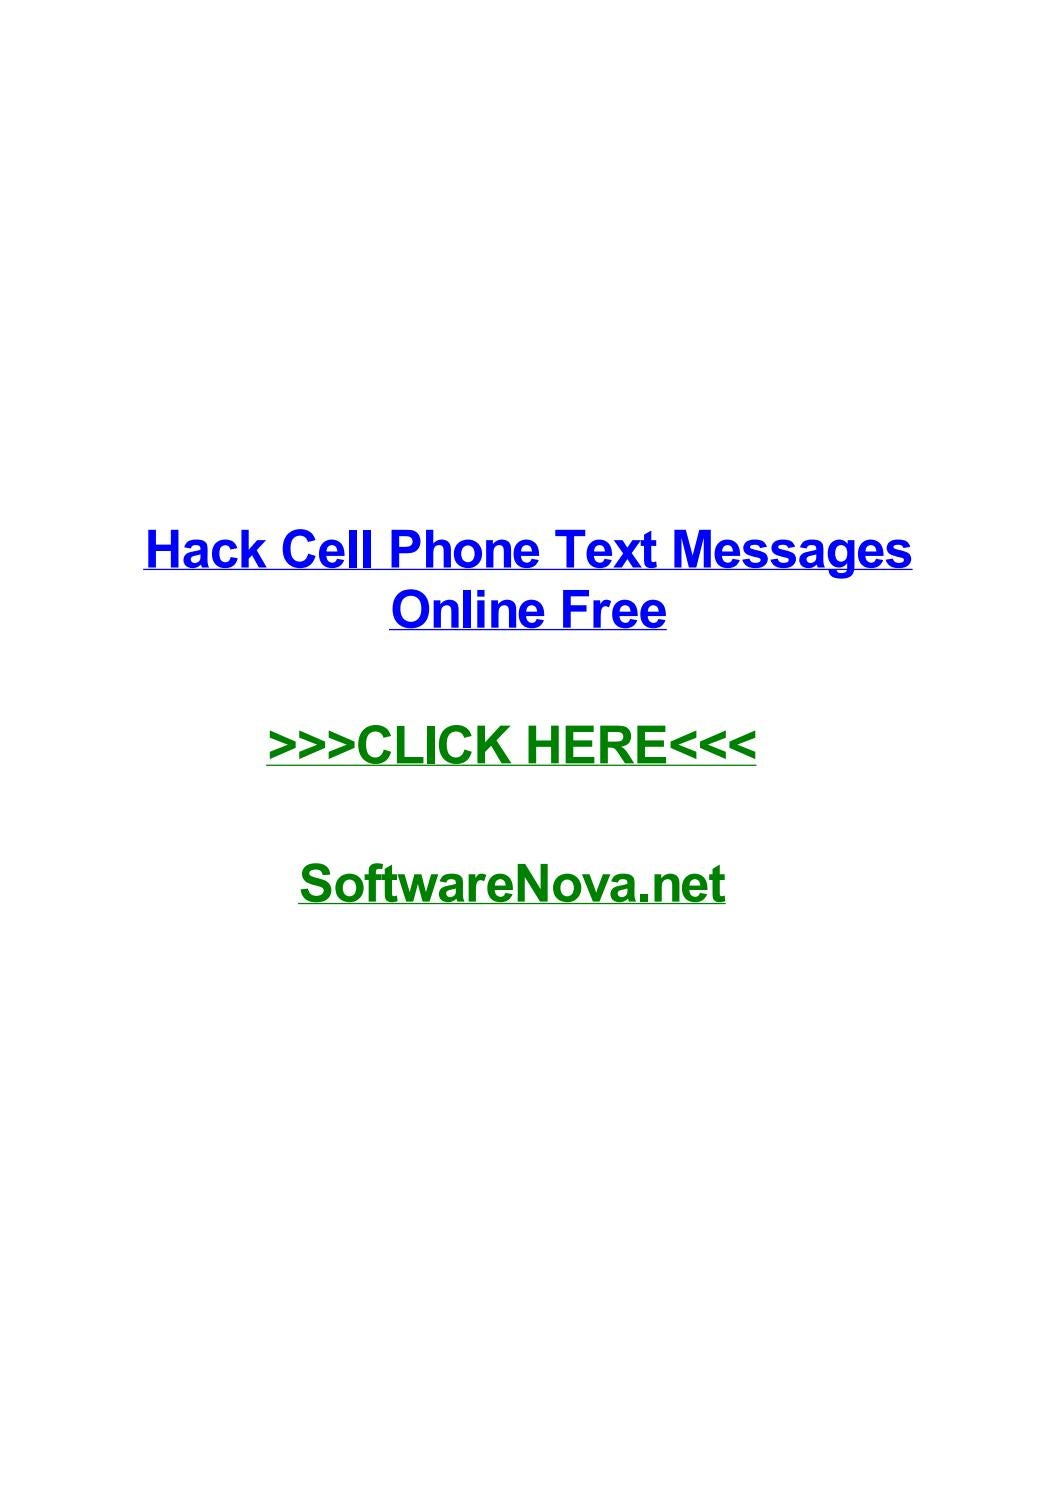 Hack cell phone text messages online free by davidiayz - issuu